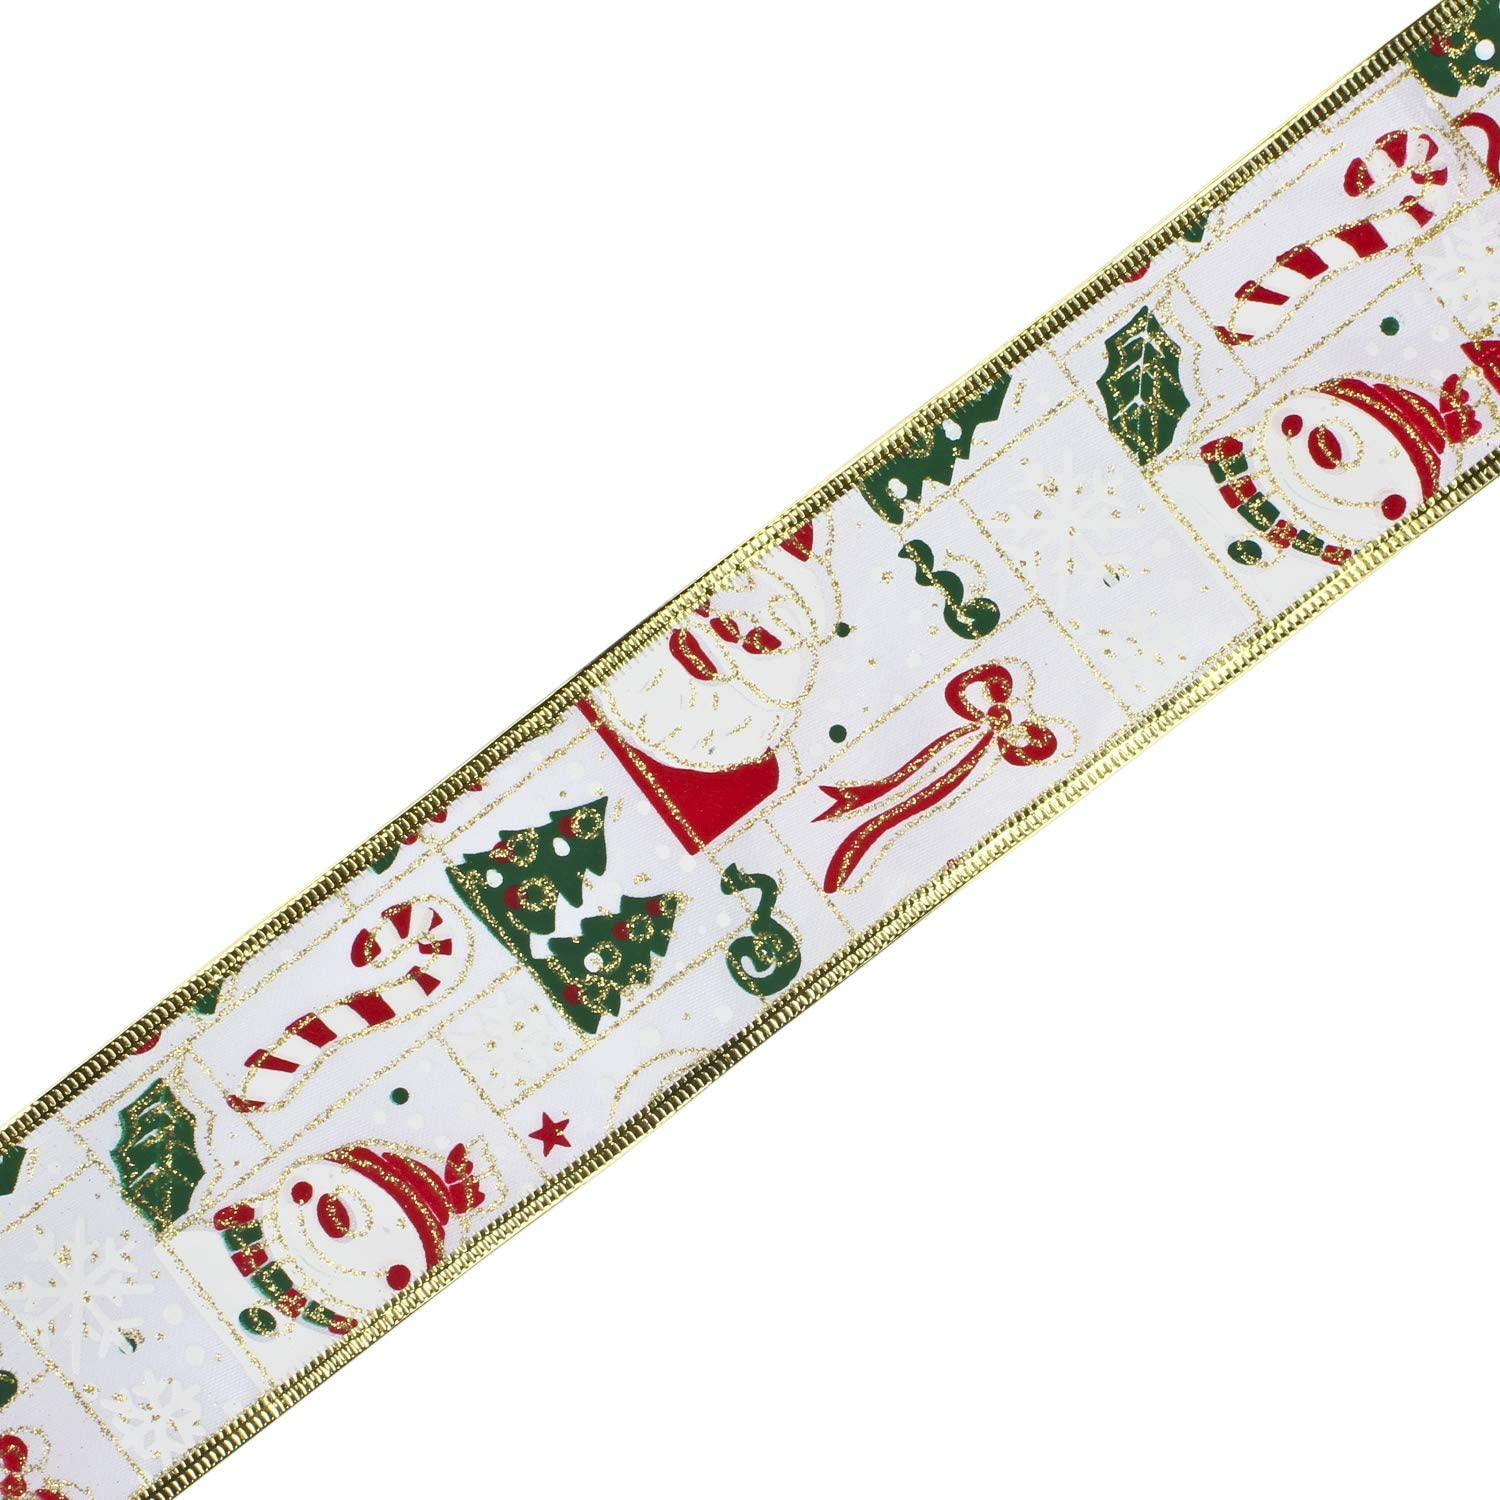 Swirl Christmas Tree Ribbon for DIY Crafts and Gift Wrapping-63MM x 5Yard Spool-Red RUSPEPA Christmas Stain Wired Ribbon